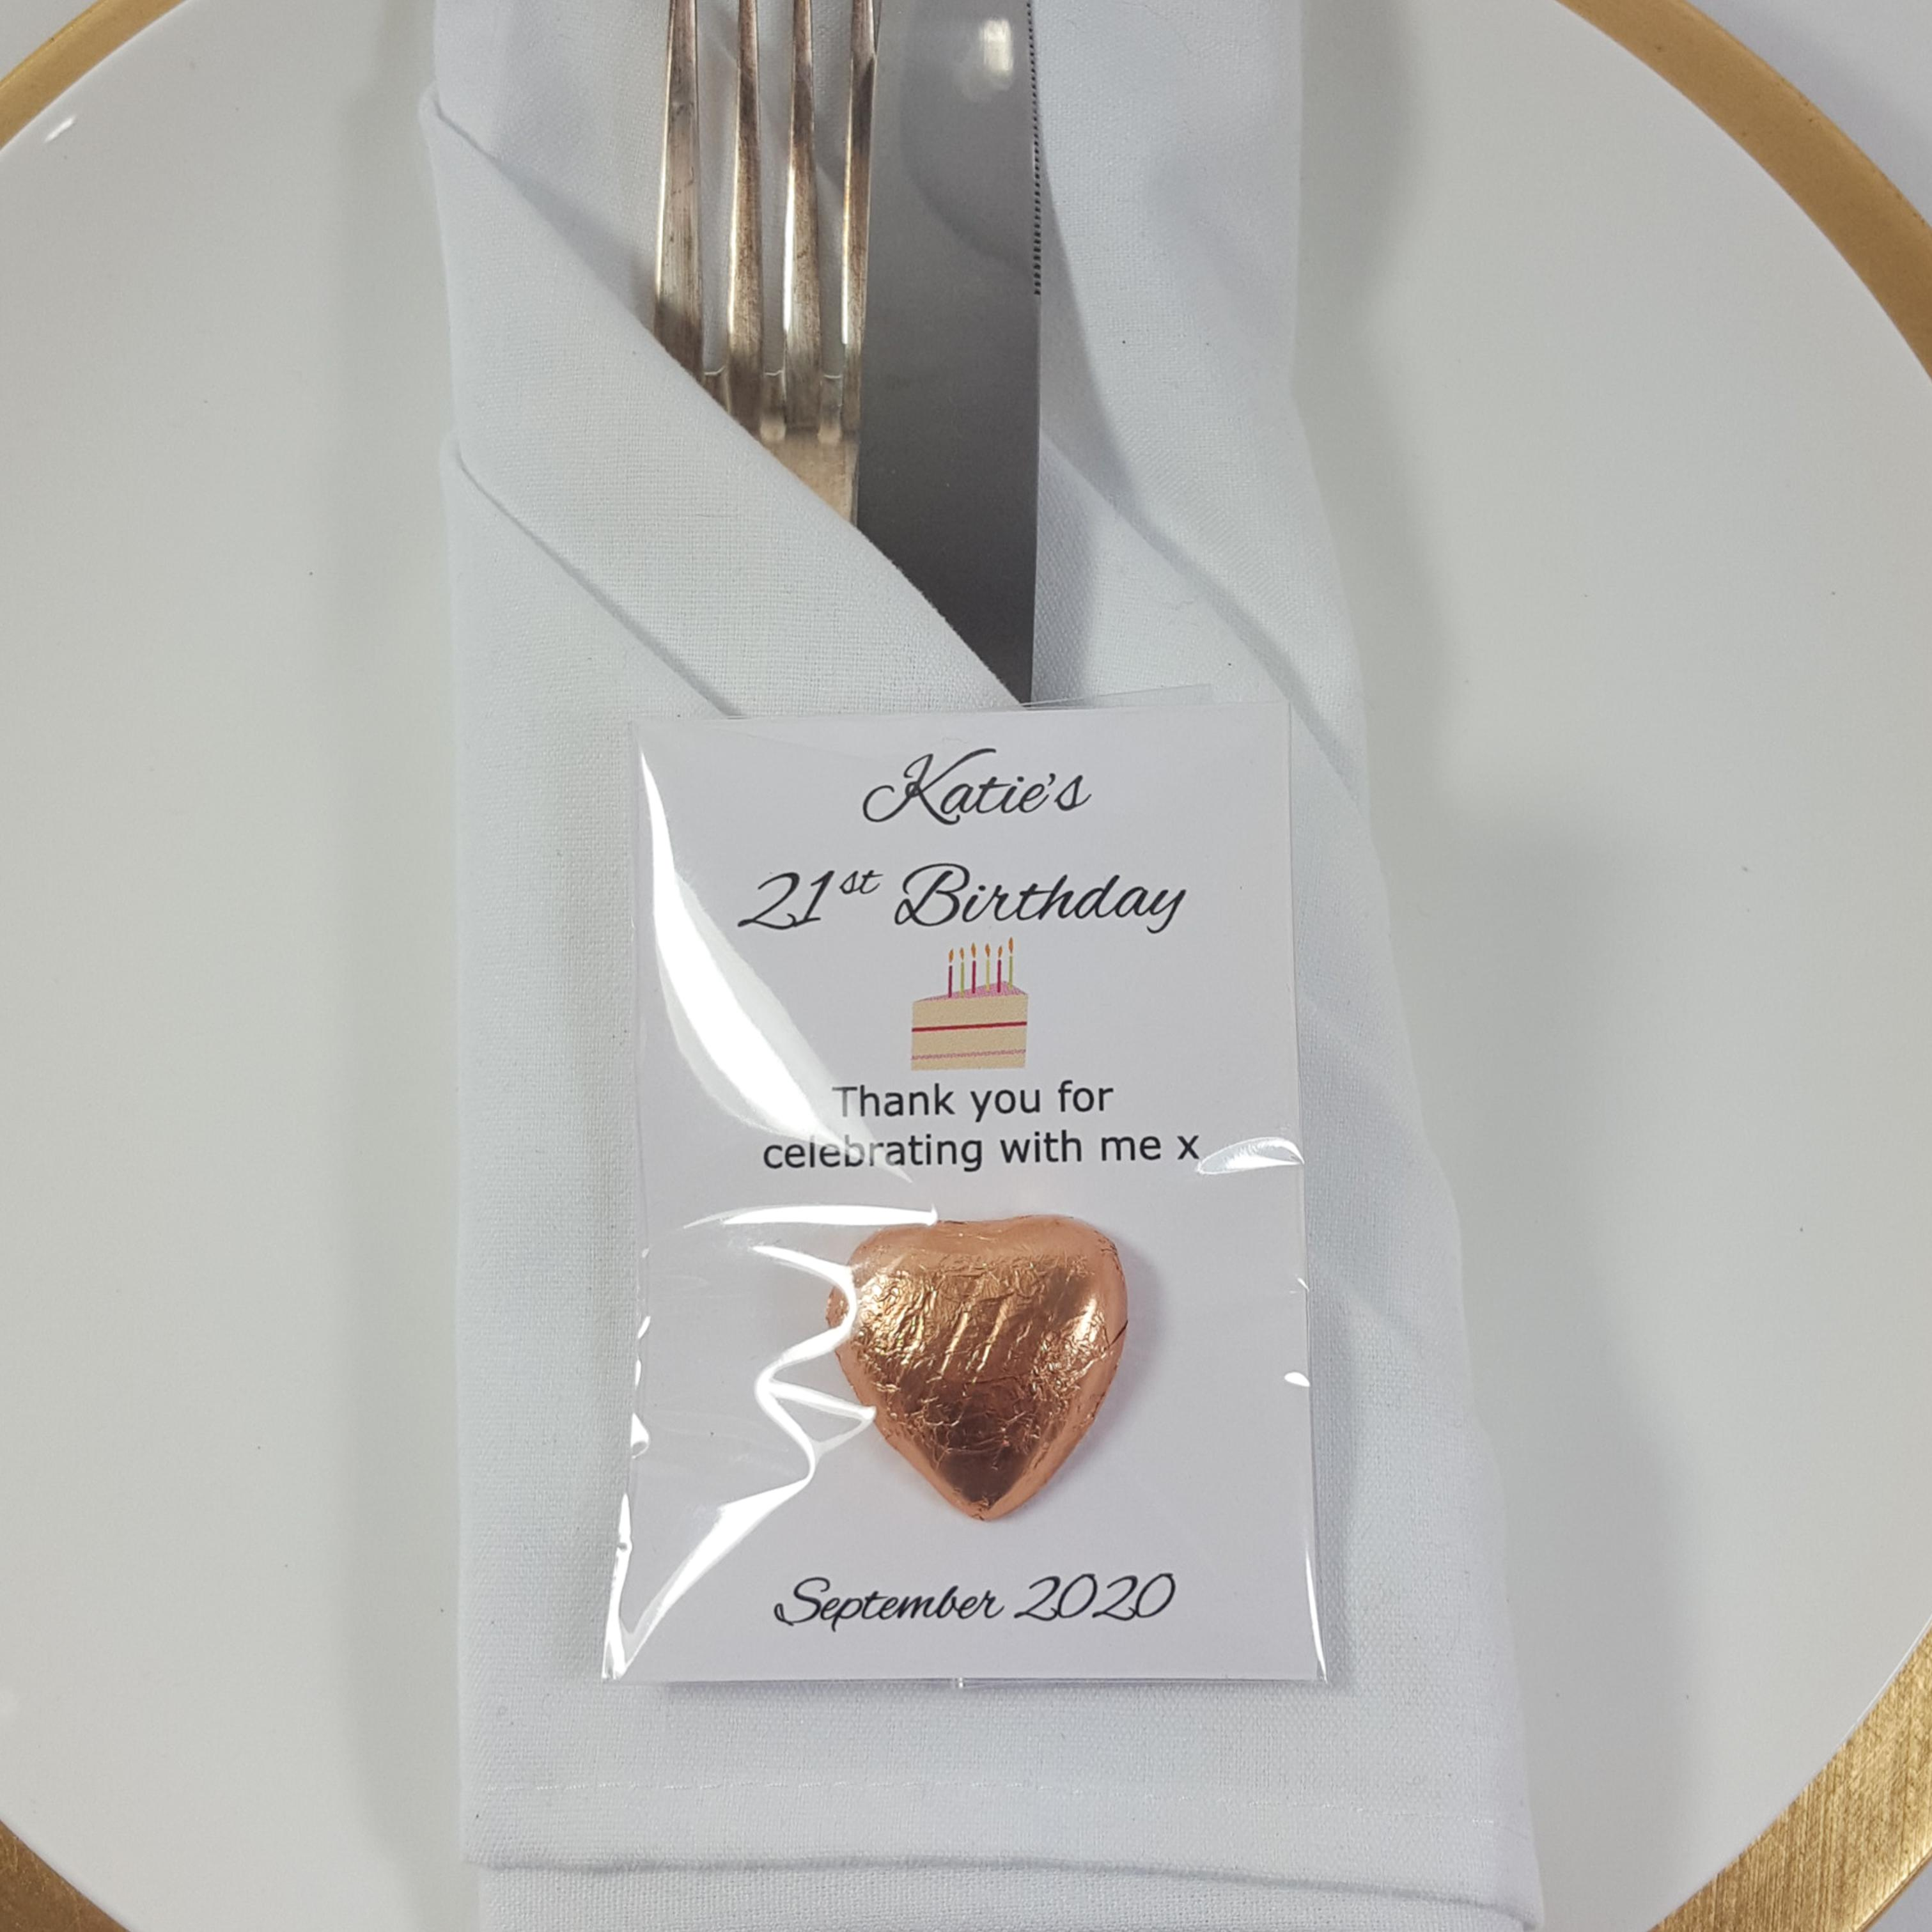 Personalised chocolate favour with cake artwork